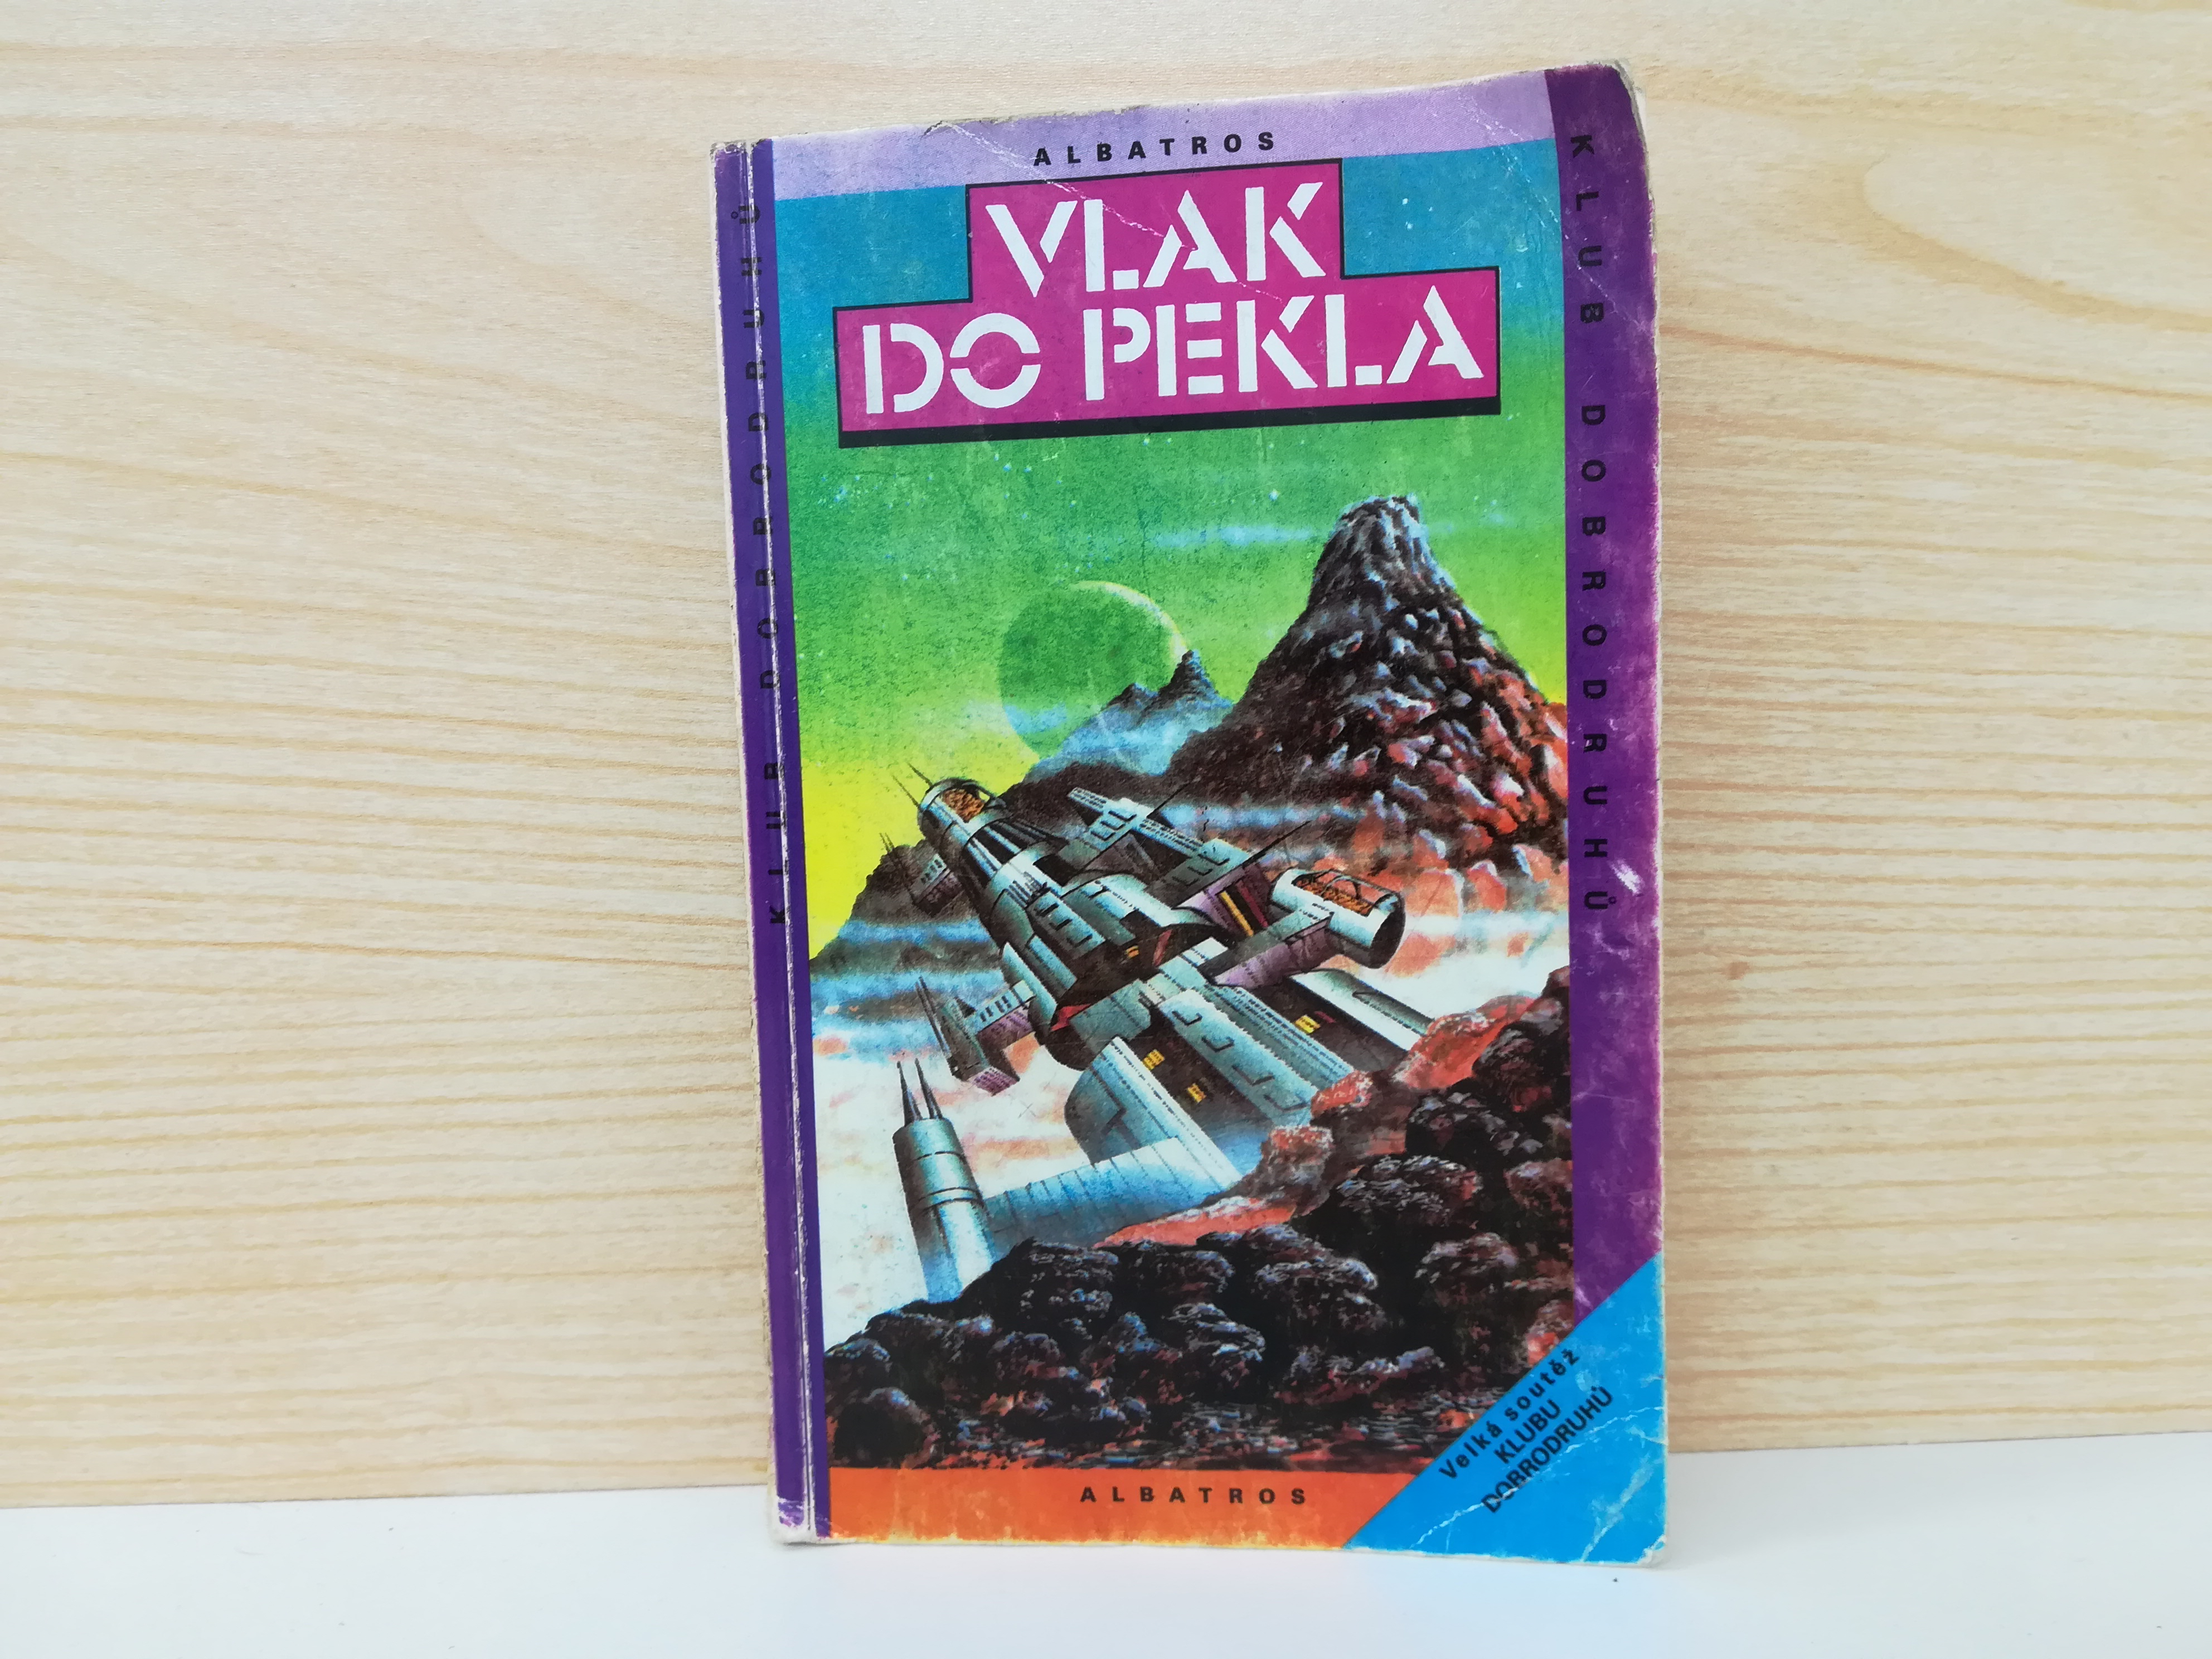 * antologie - Vlak do pekla